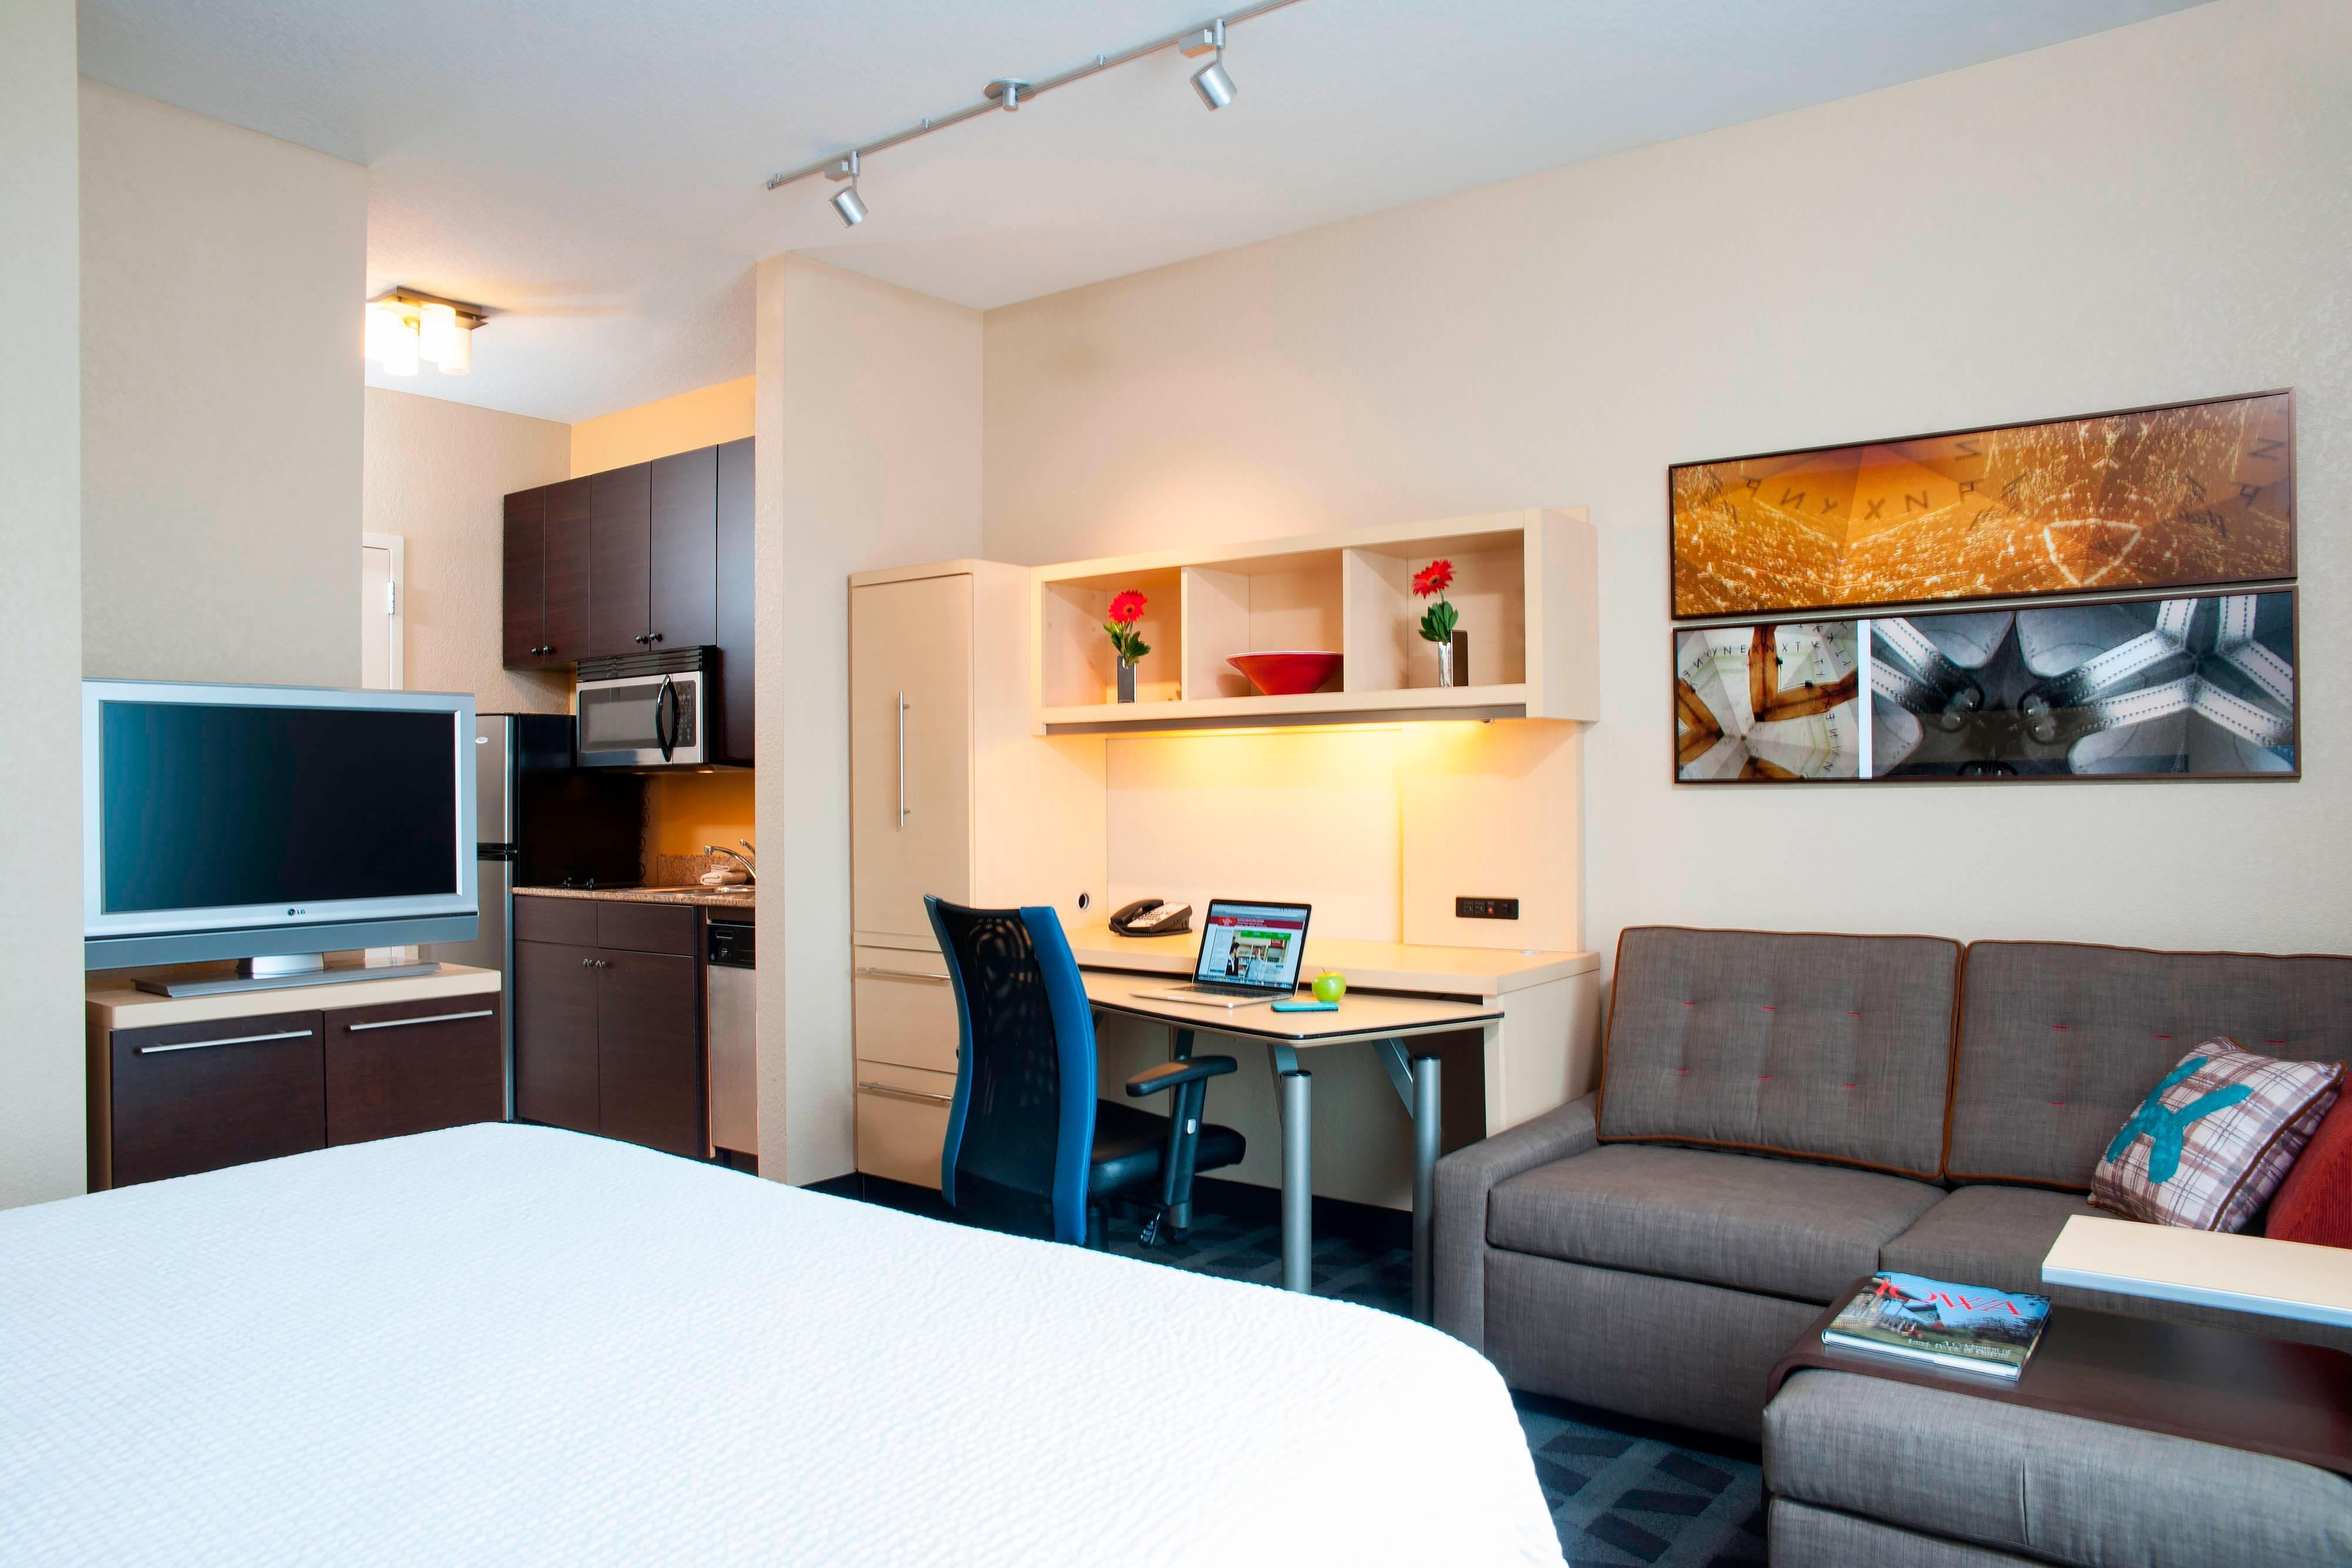 Studio room at TownePlace Suites Des Moines Urbandale, IA